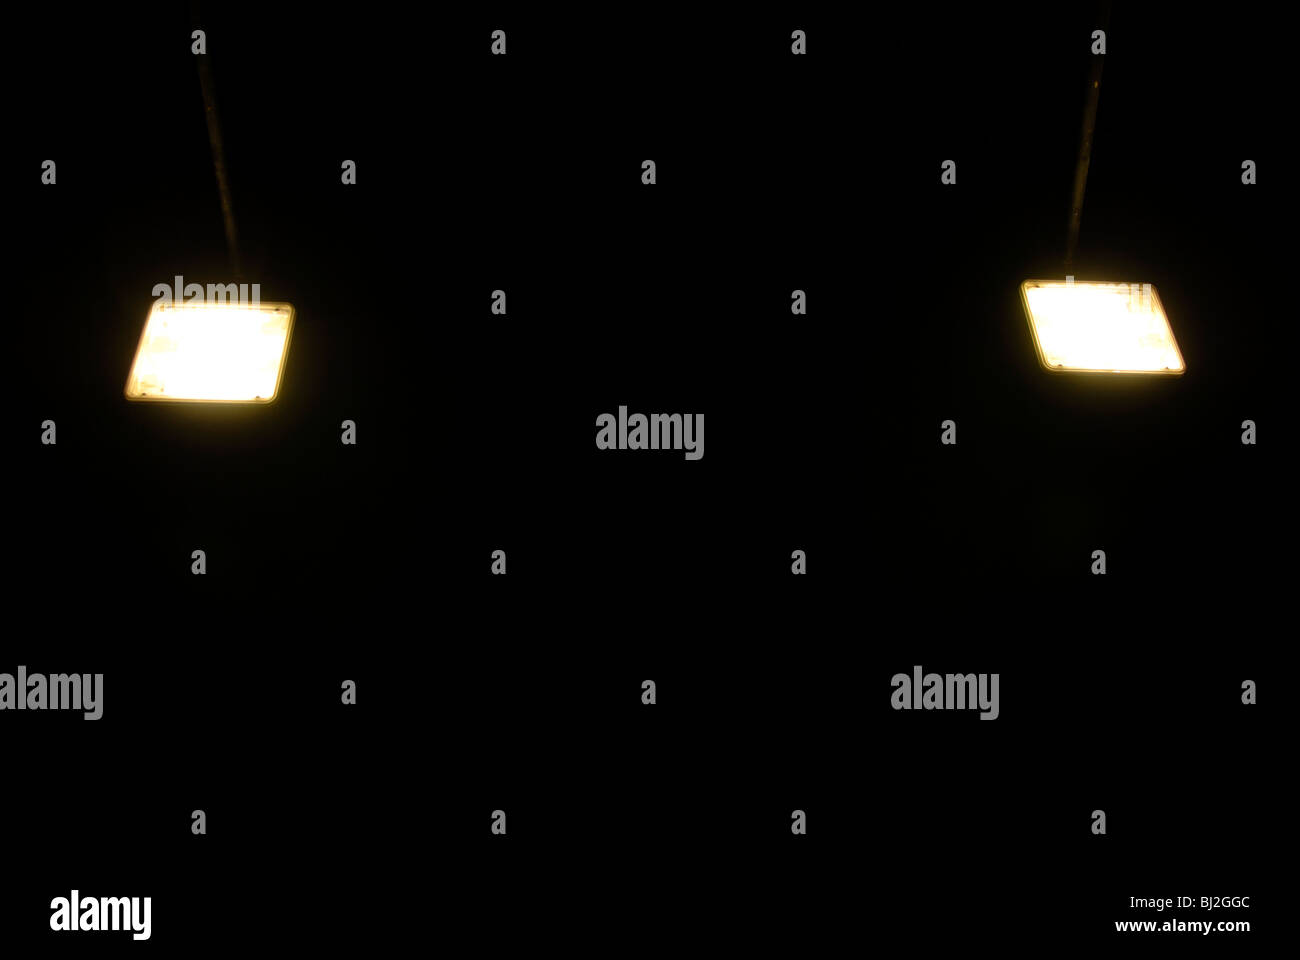 LAMPS AT NIGHT - Stock Image